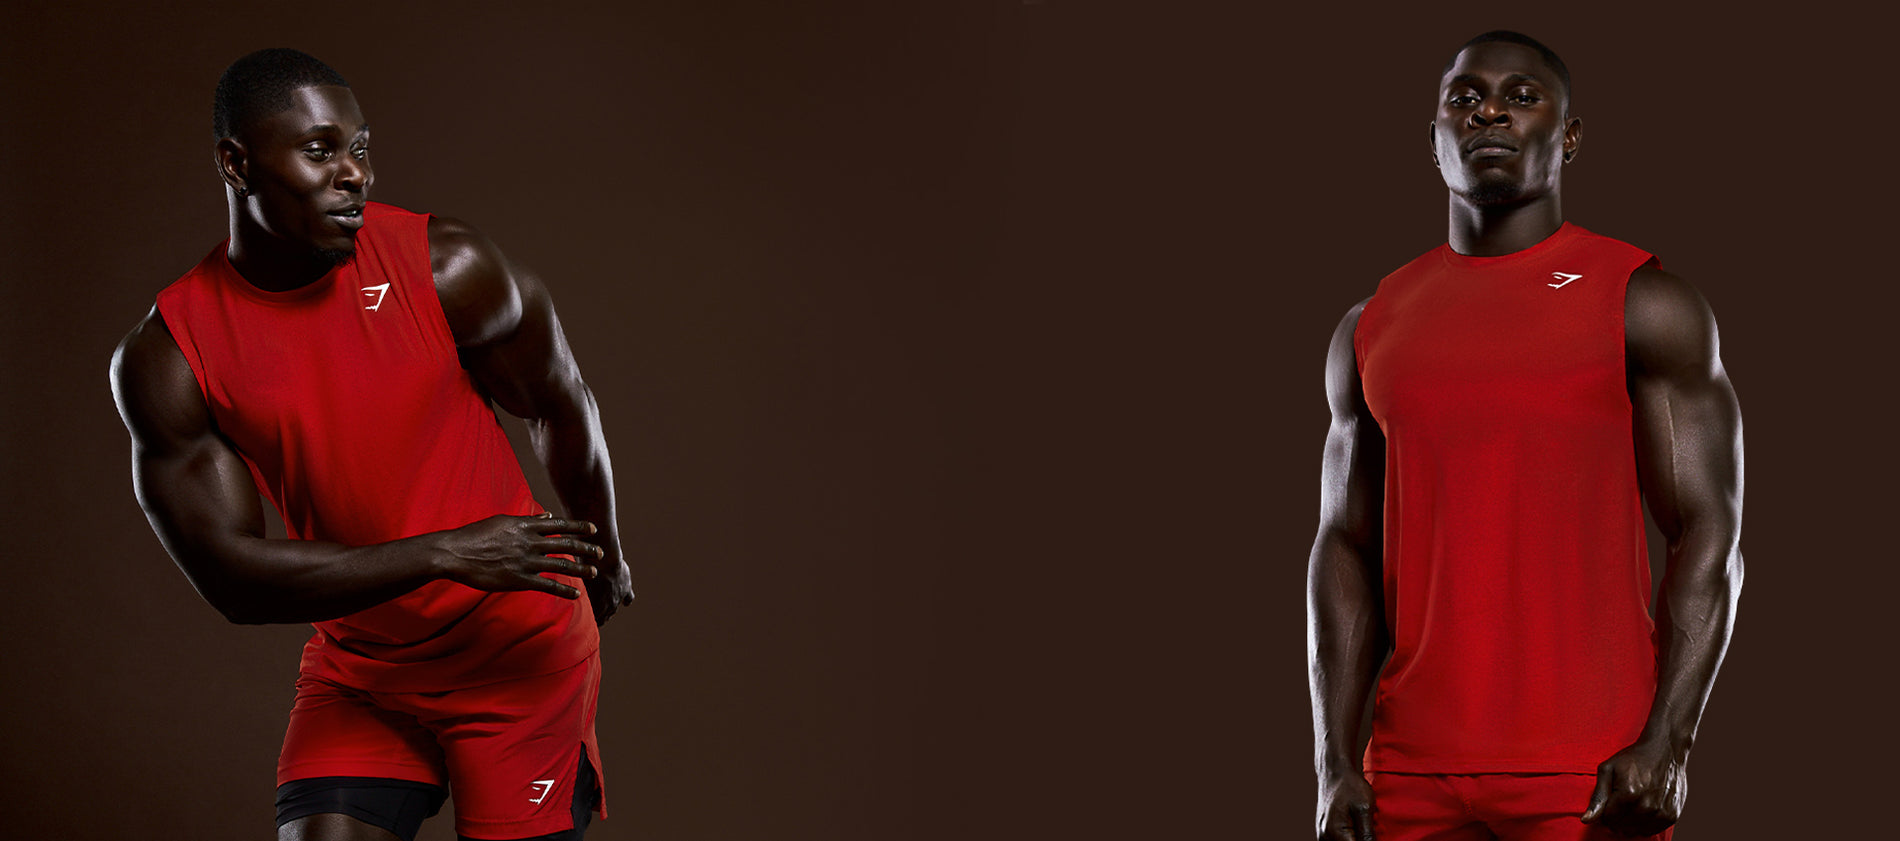 Gymshark Athlete George Bamfo posing in the Arrival tank and shorts in red.